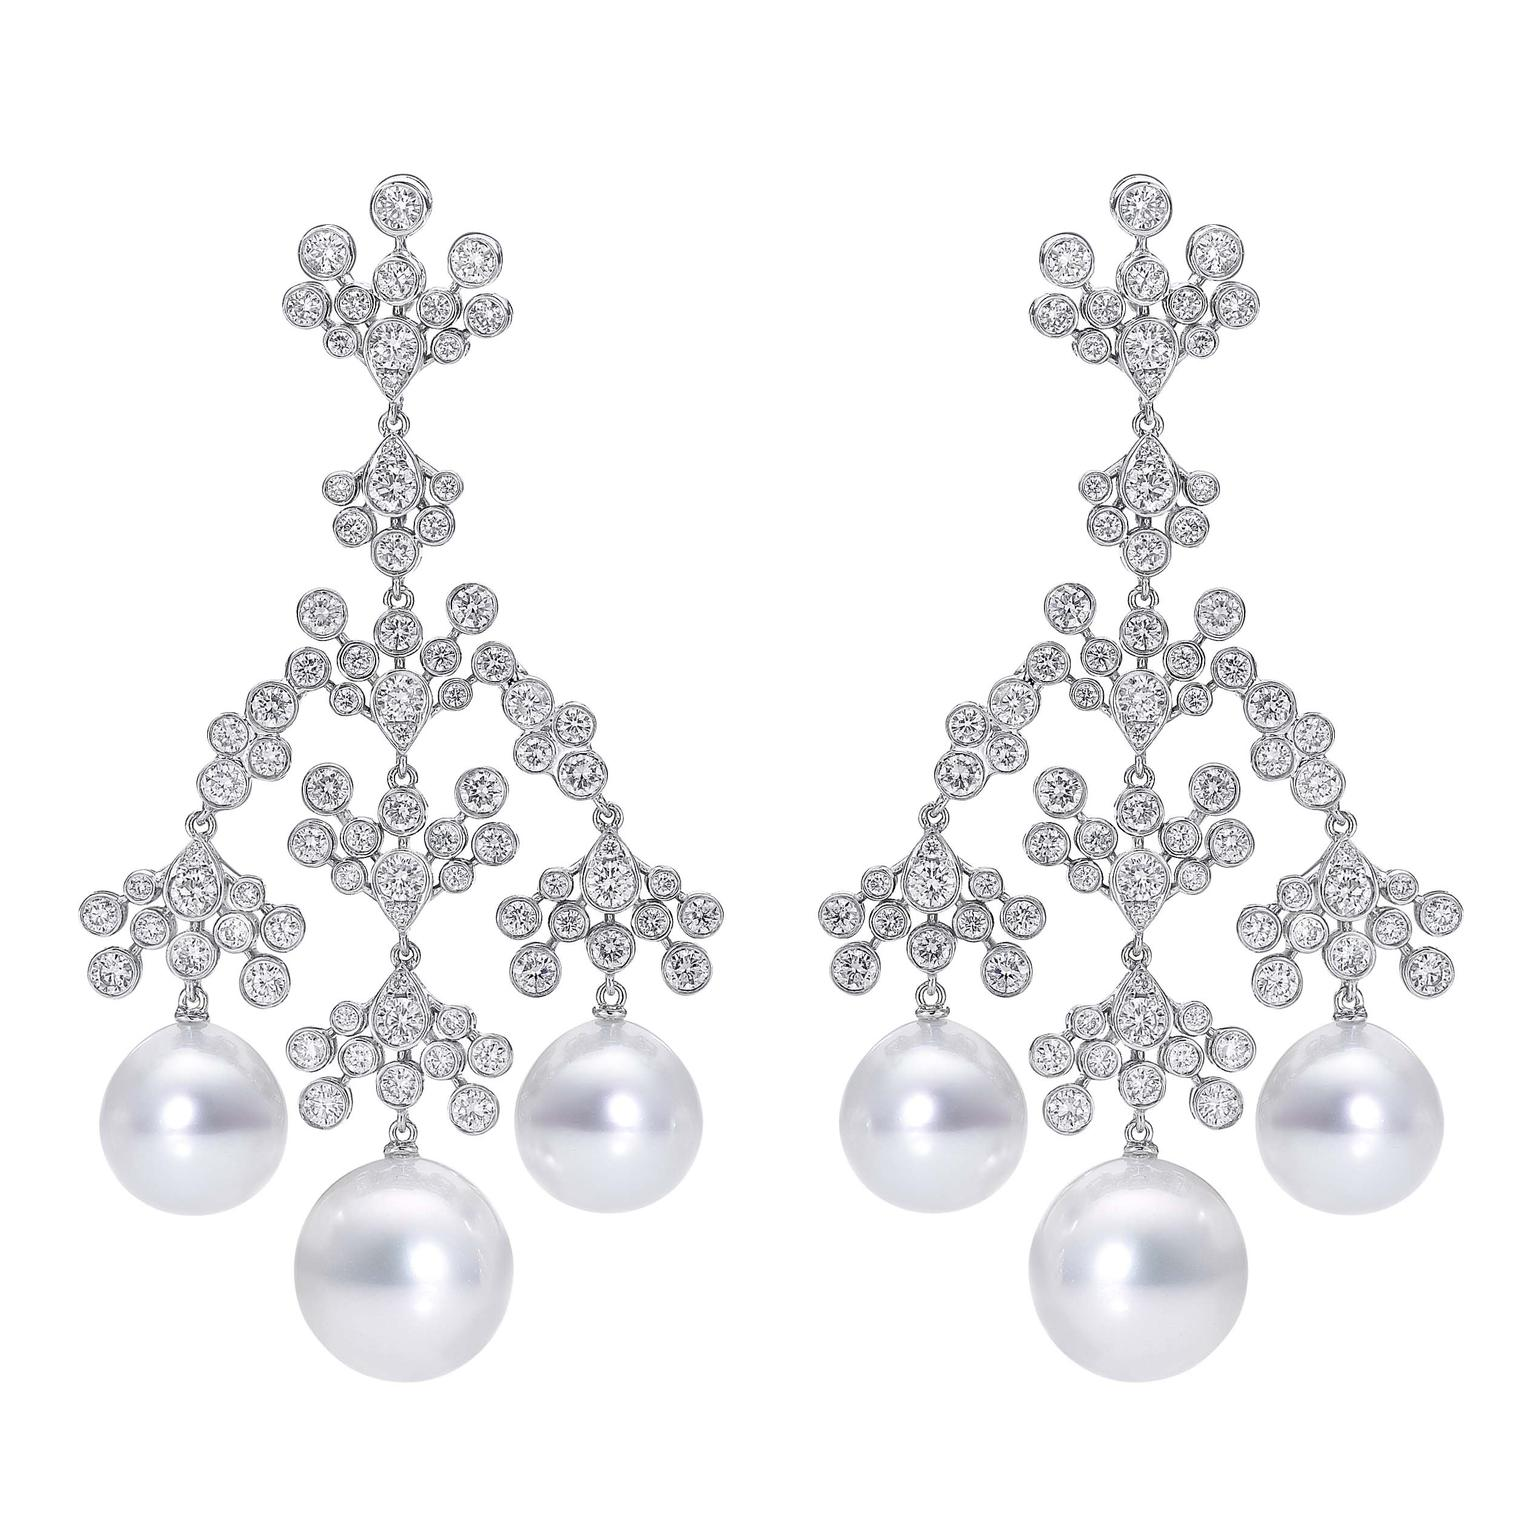 The Chandeliers earrings with diamonds from No. THIRTY THREE